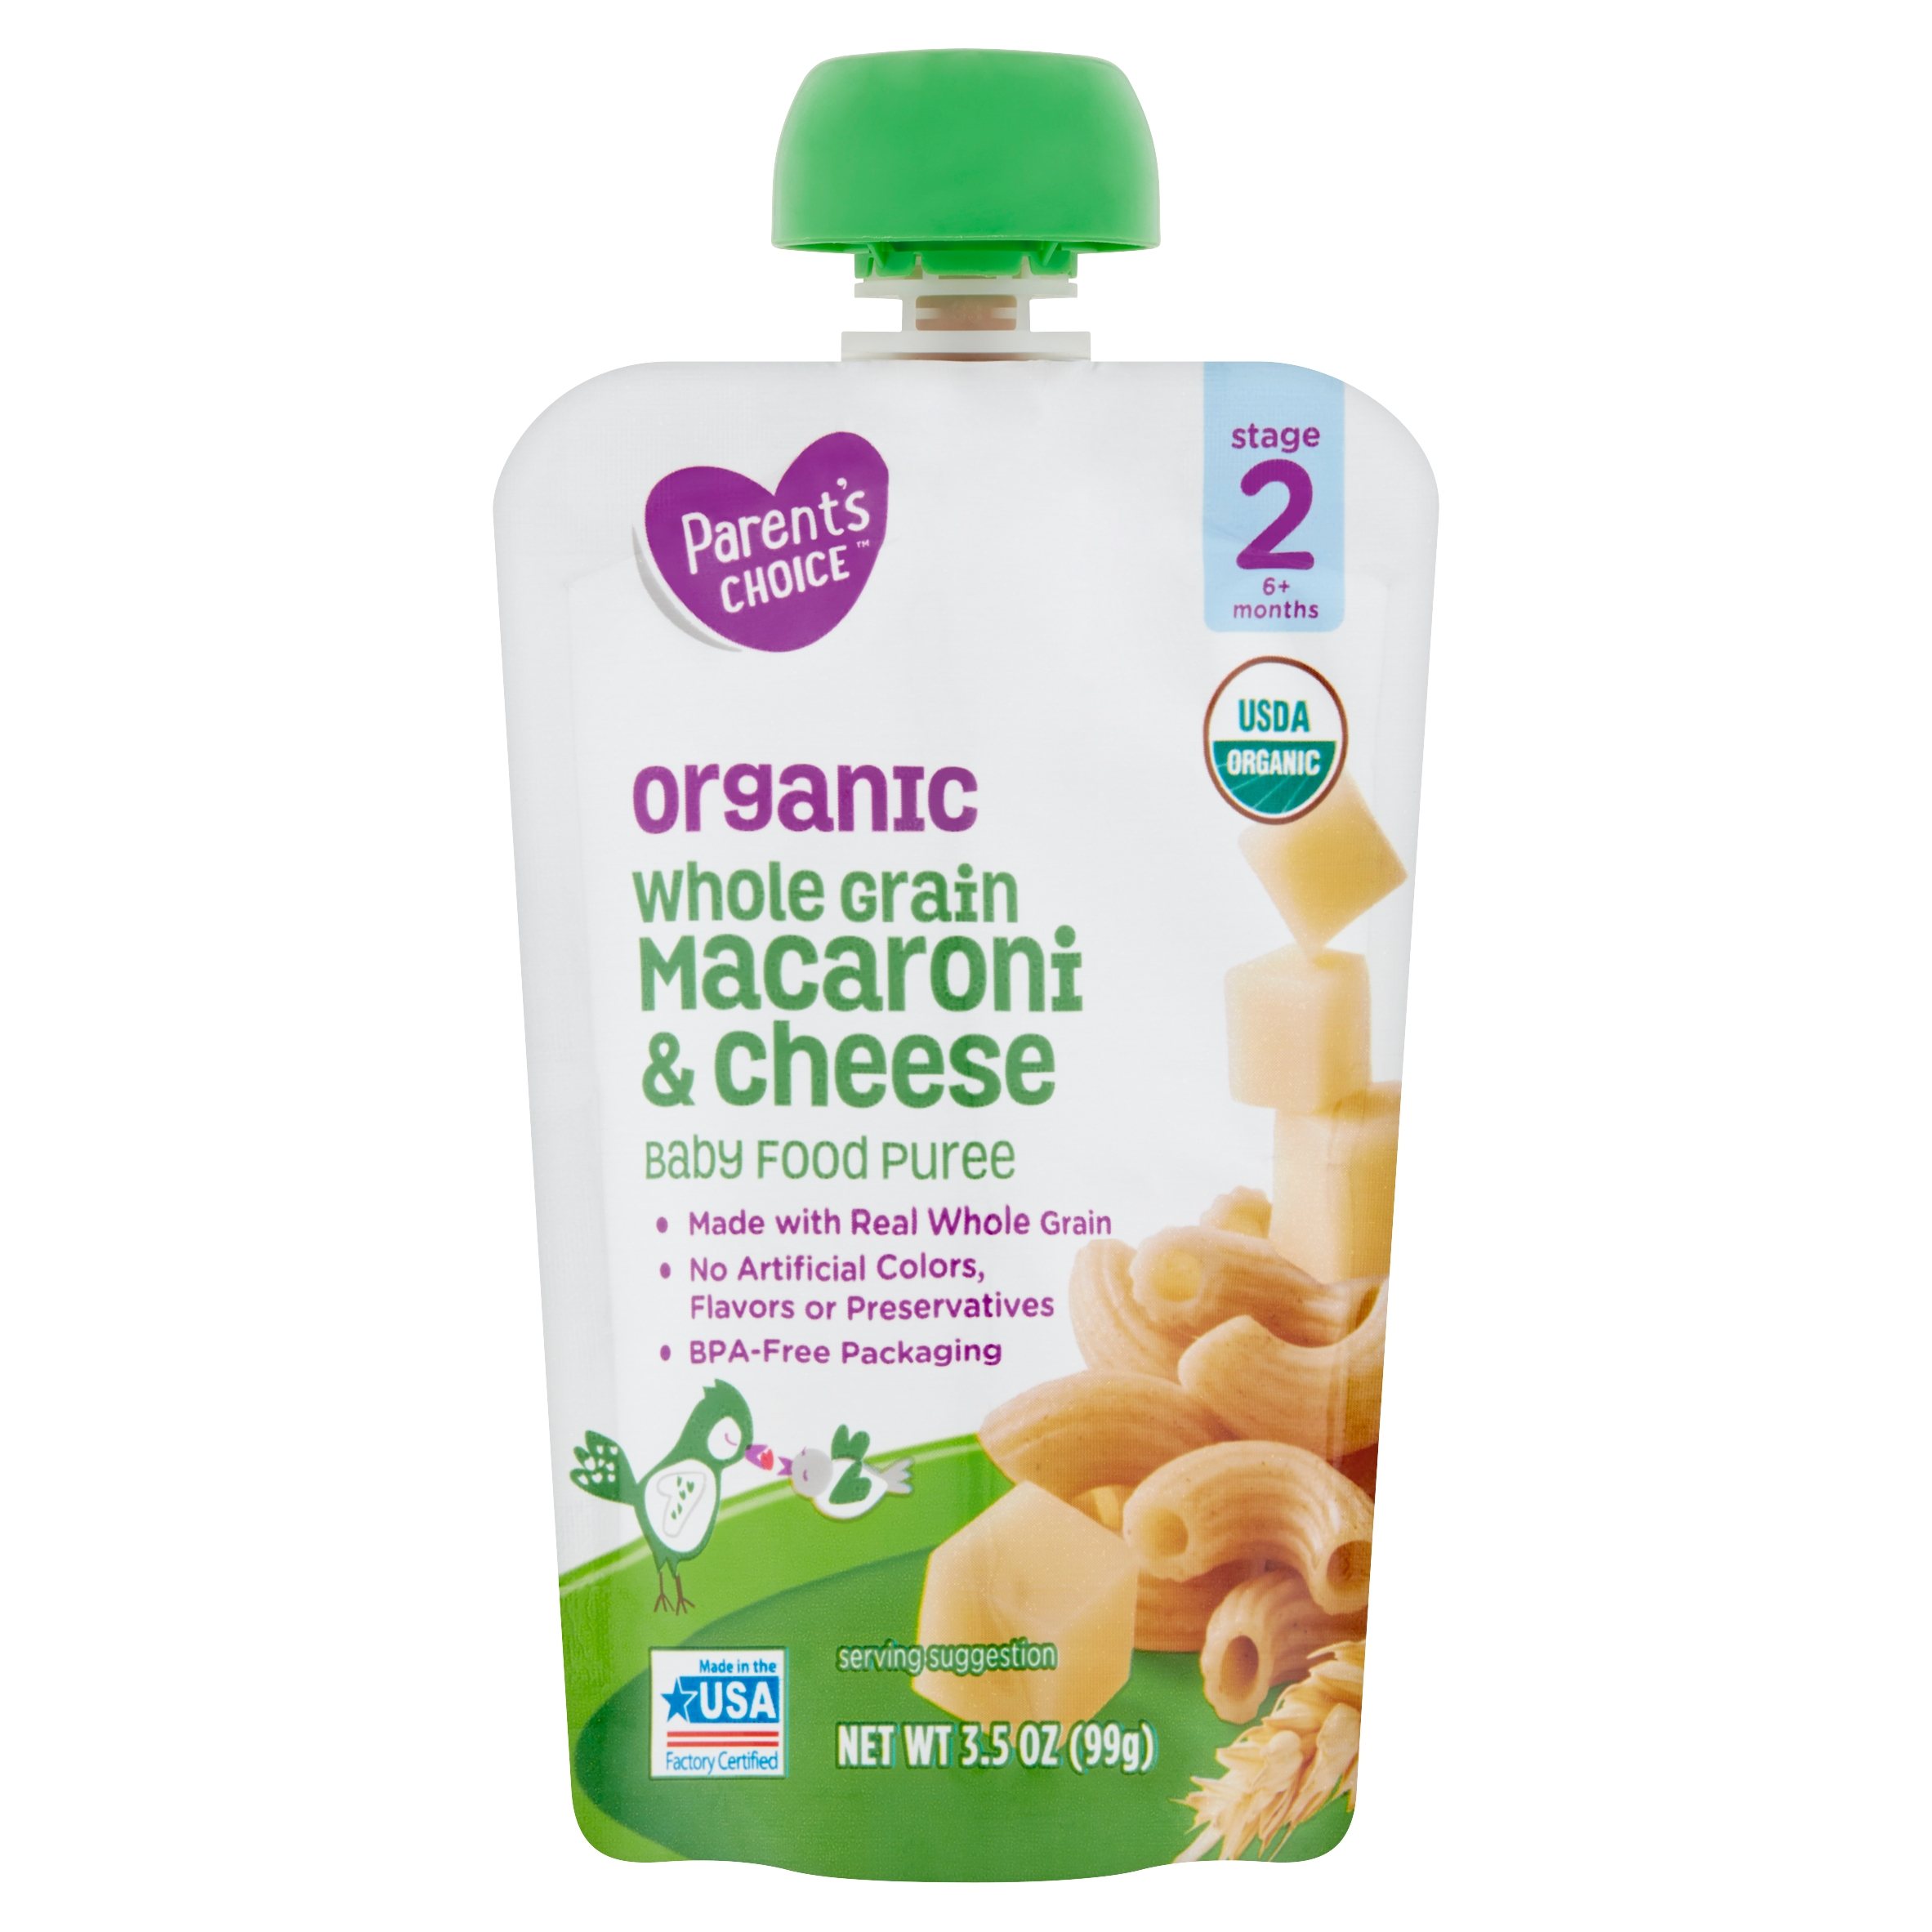 Parent's Choice Organic Whole Grain Macaroni & Cheese, Stage 2, 3.5 oz Pouch